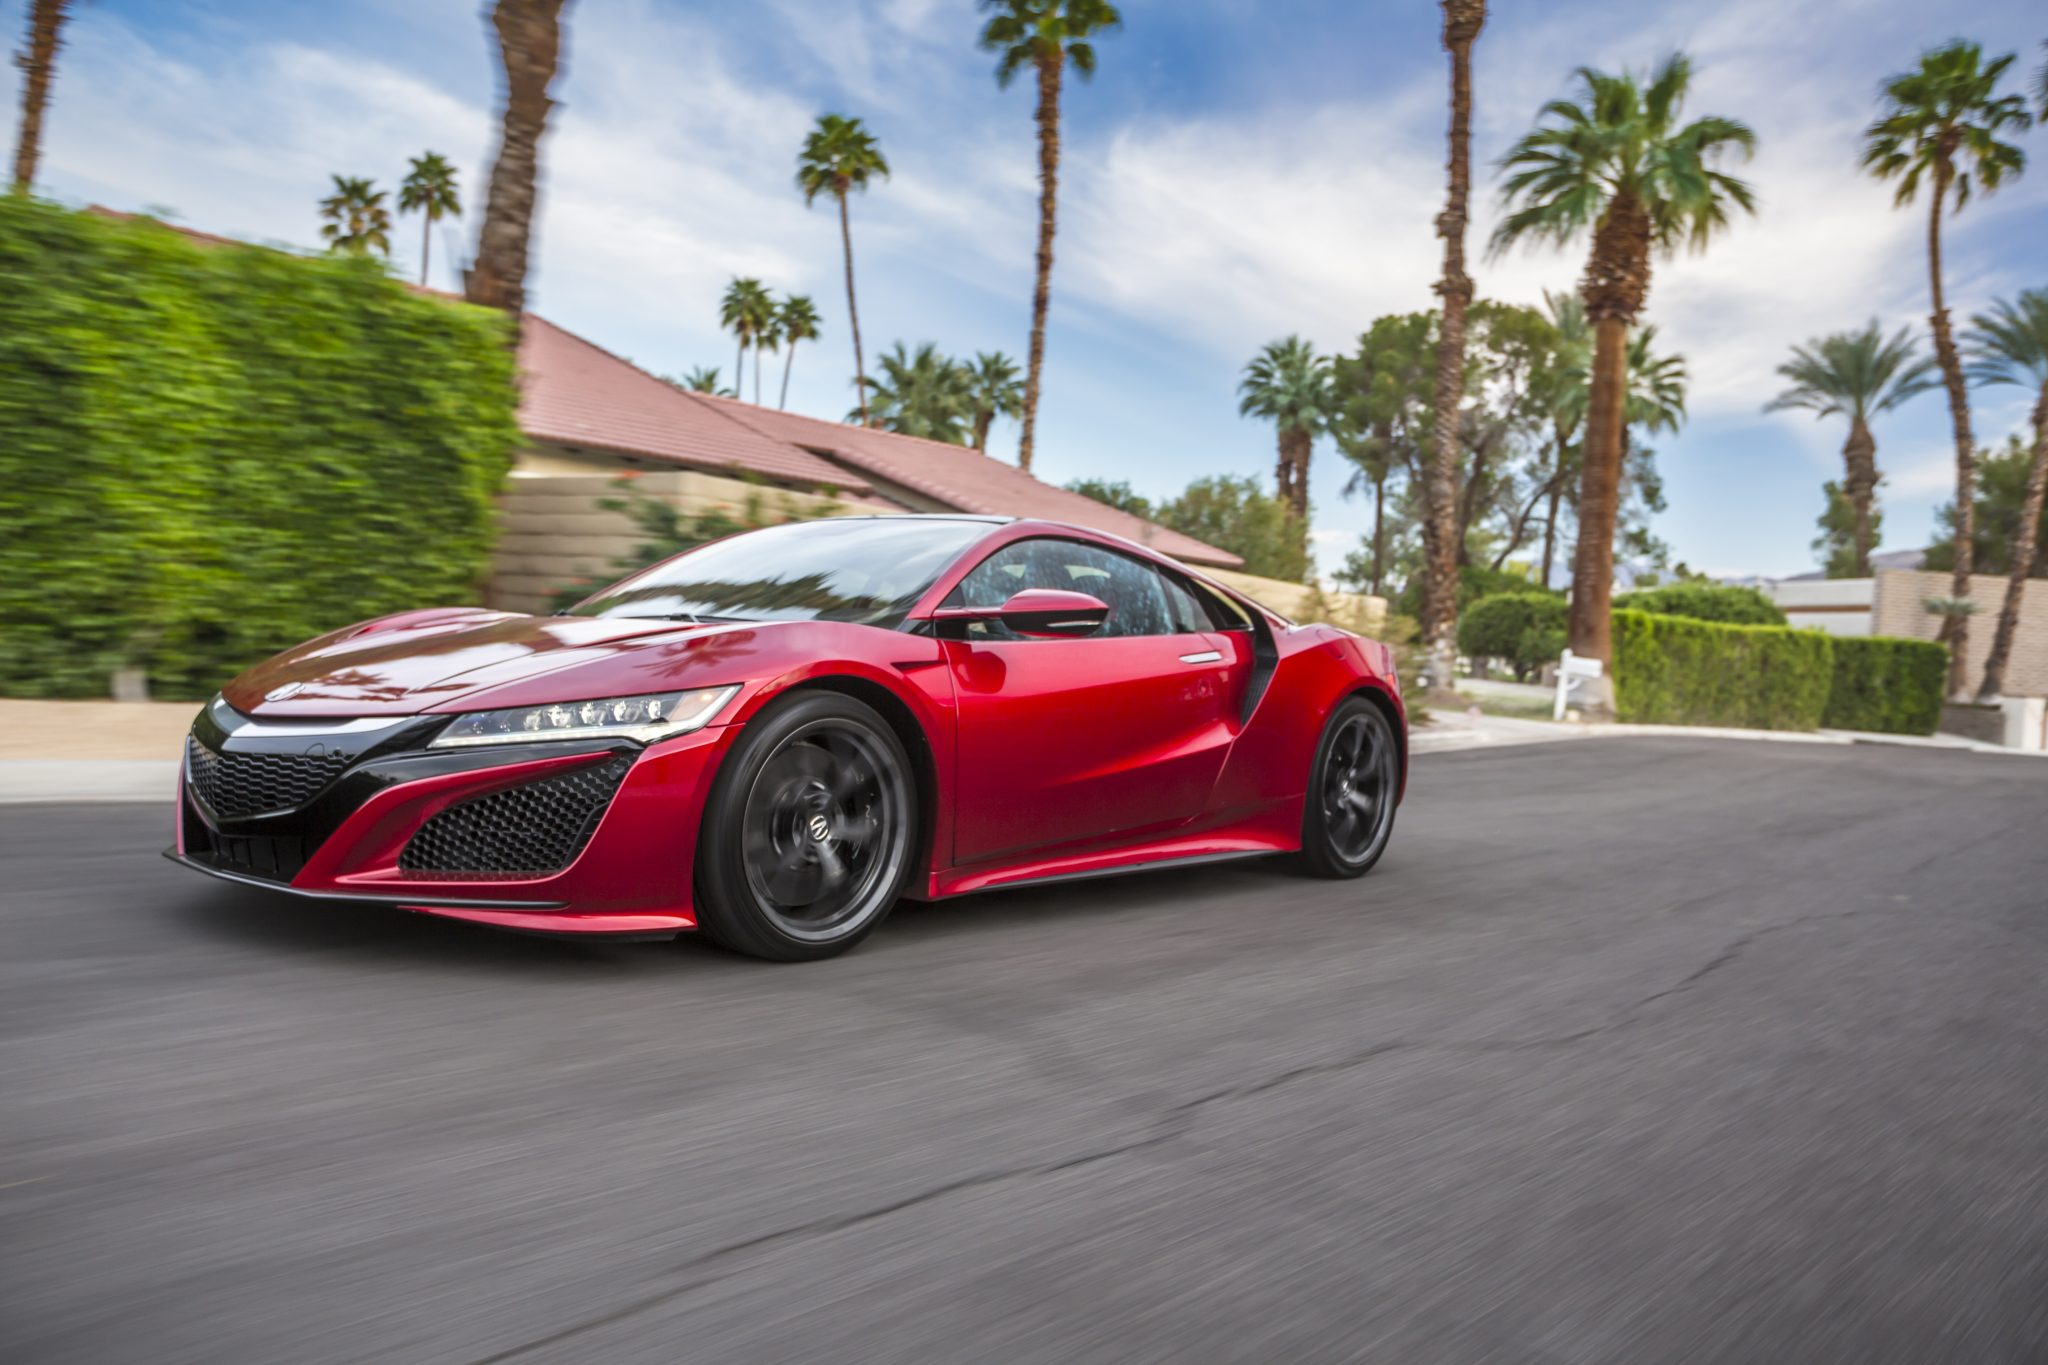 All Electric Next Generation Acura Nsx Could Happen Automobile Wiring Diagram For 1996 Integra 13 55